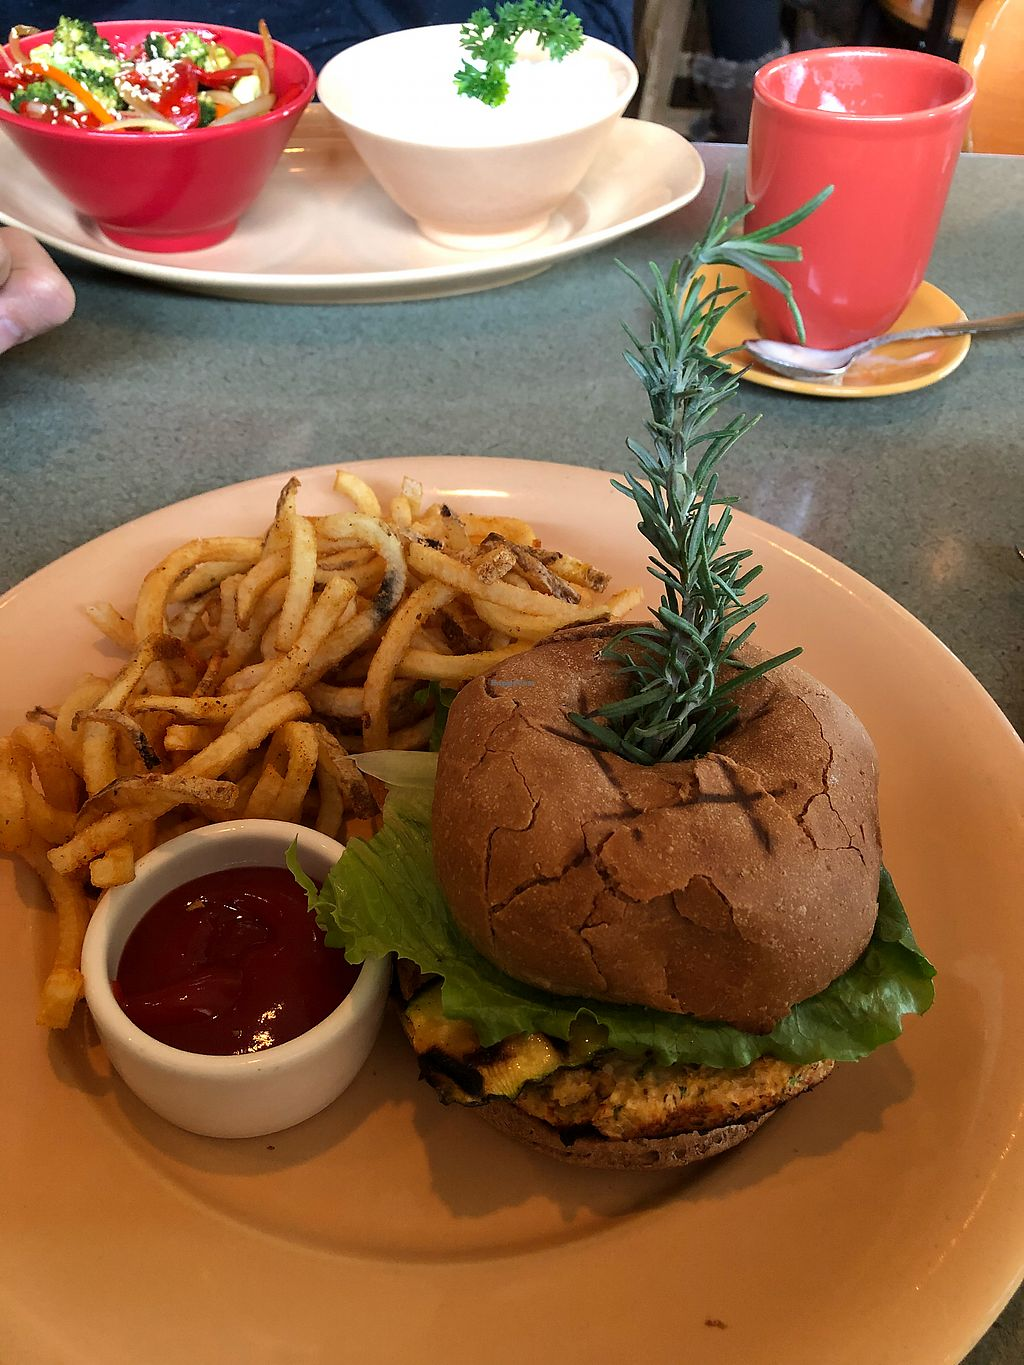 """Photo of Spin Cafe  by <a href=""""/members/profile/Levi"""">Levi</a> <br/>Veggie Burger <br/> November 27, 2017  - <a href='/contact/abuse/image/50410/329776'>Report</a>"""